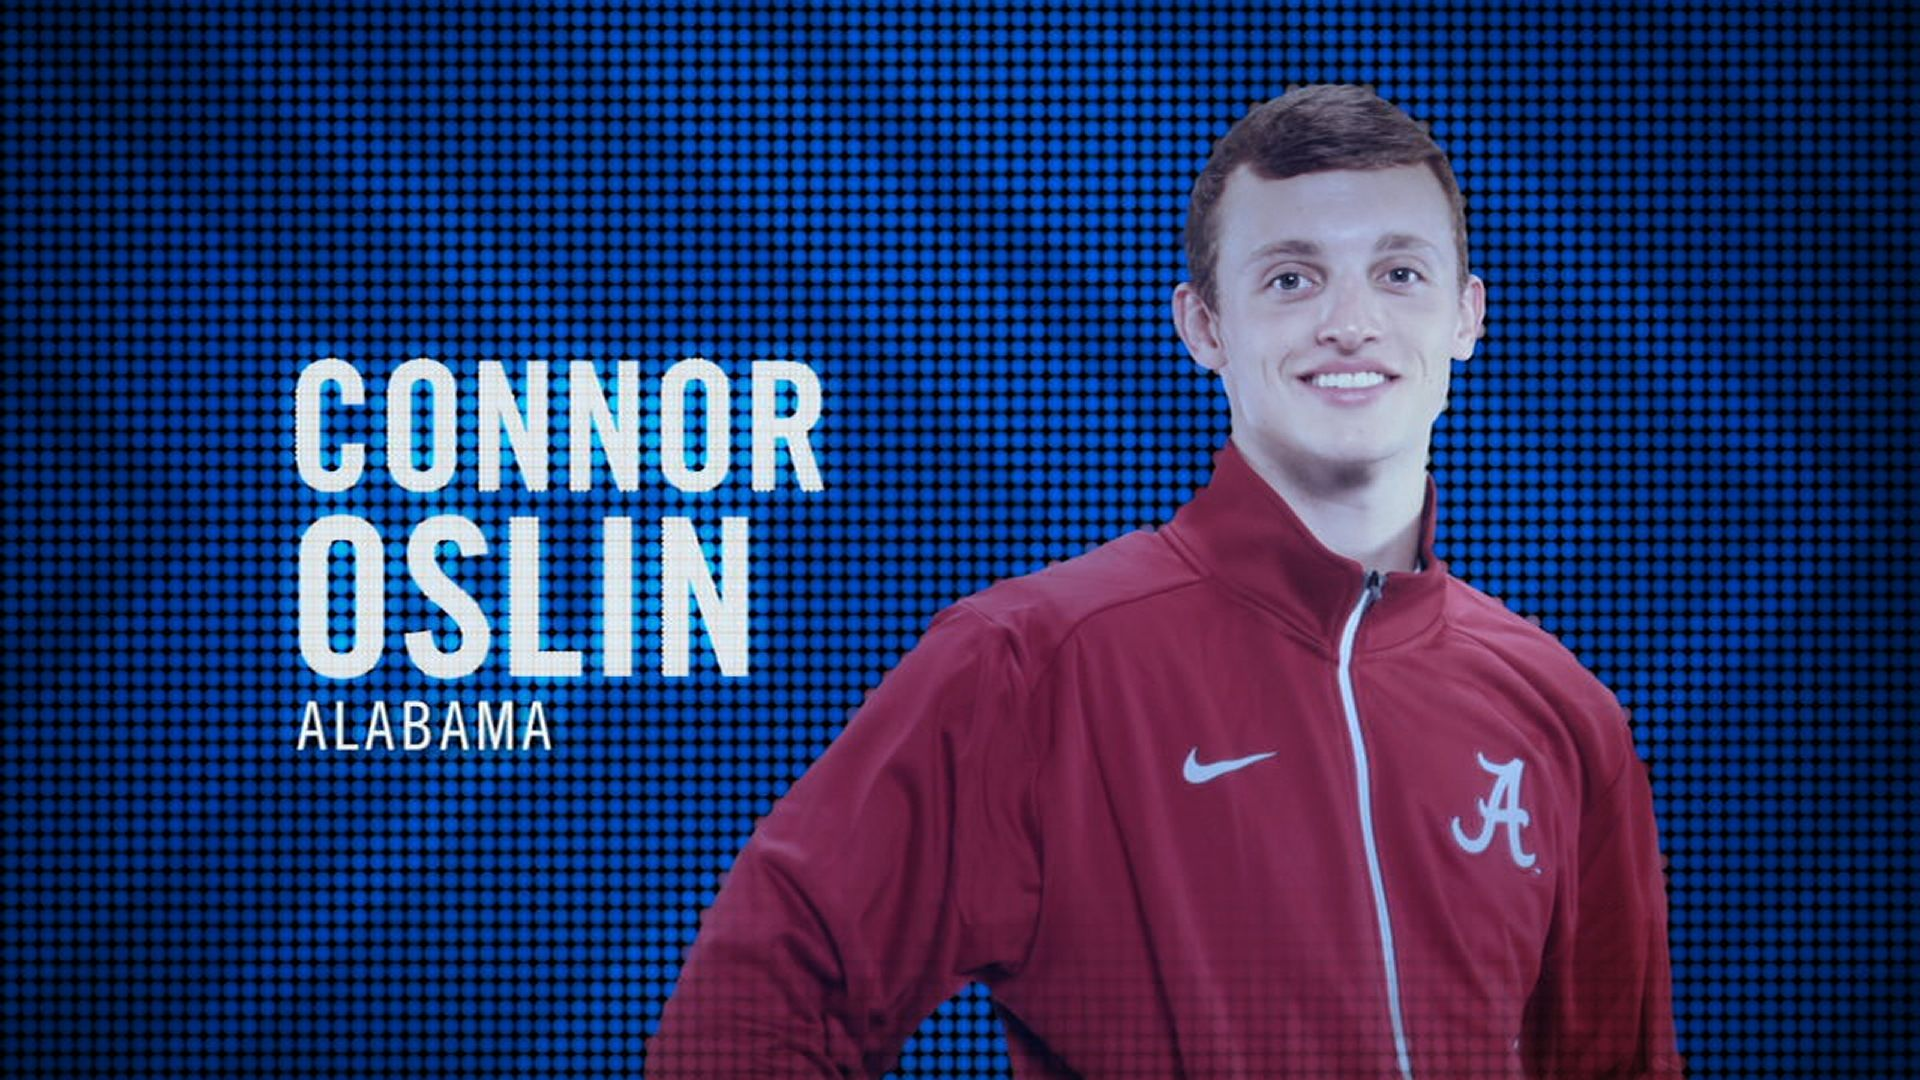 I am the SEC: Alabama's Connor Oslin